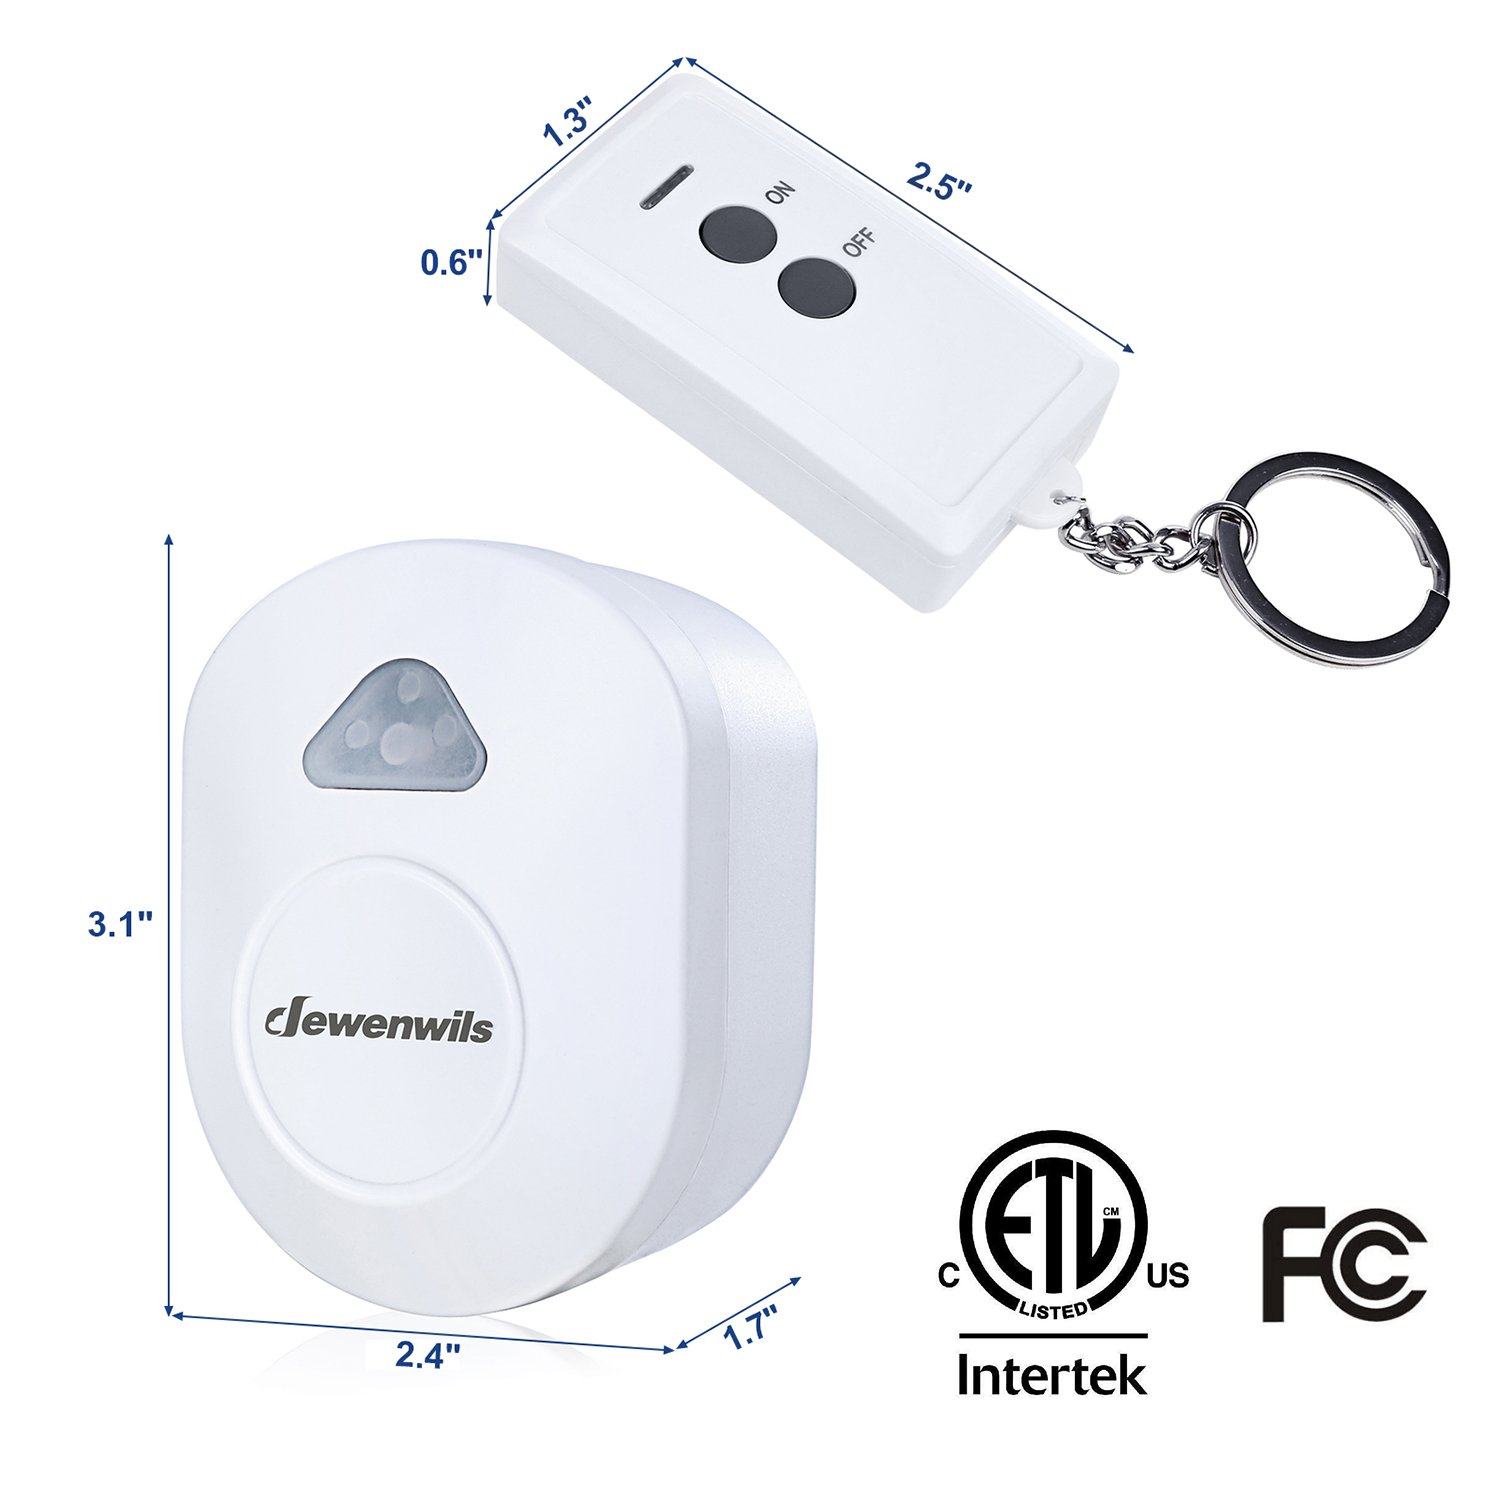 oem cert best remote product fan wireless for with control christmas ce rf lighting light store rohs switch fashion kit odm